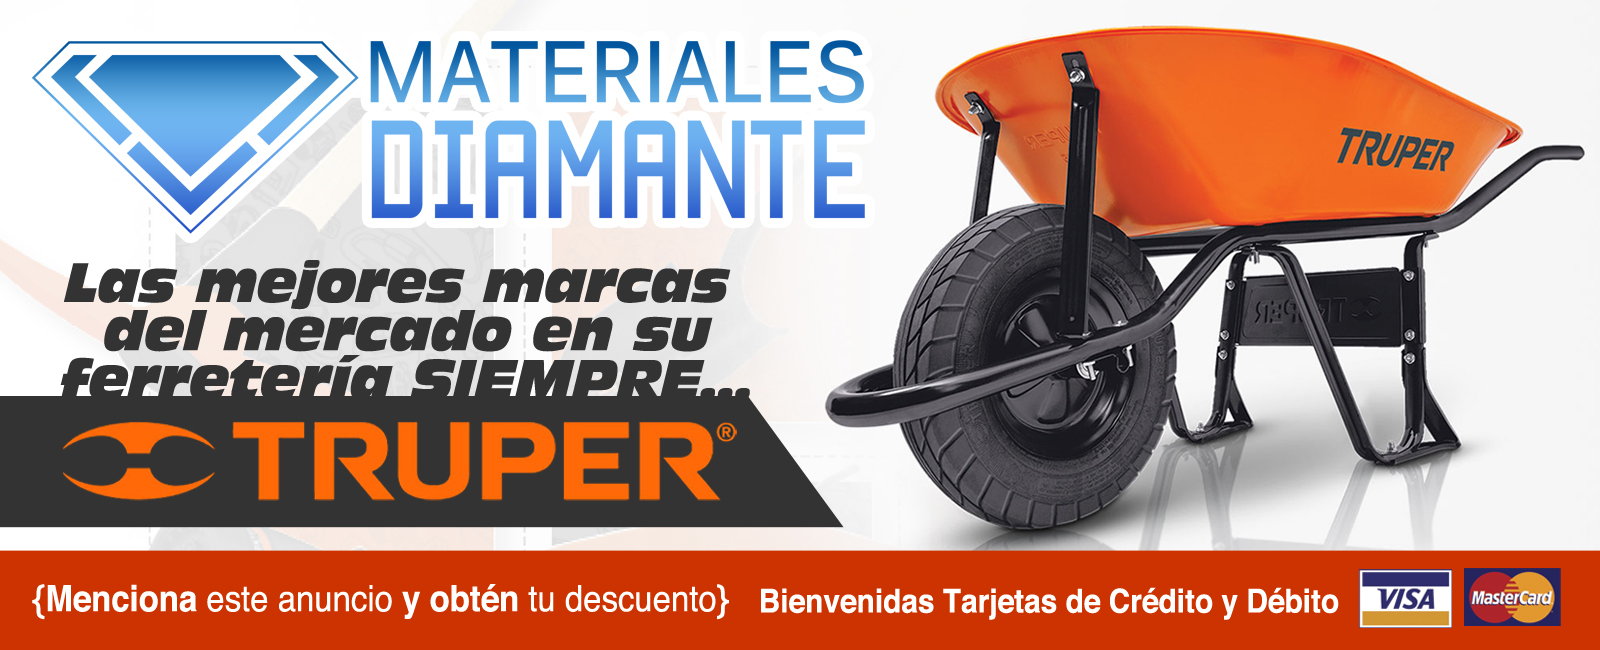 materiales-diamante-para-la-construccion-y-ferreteria